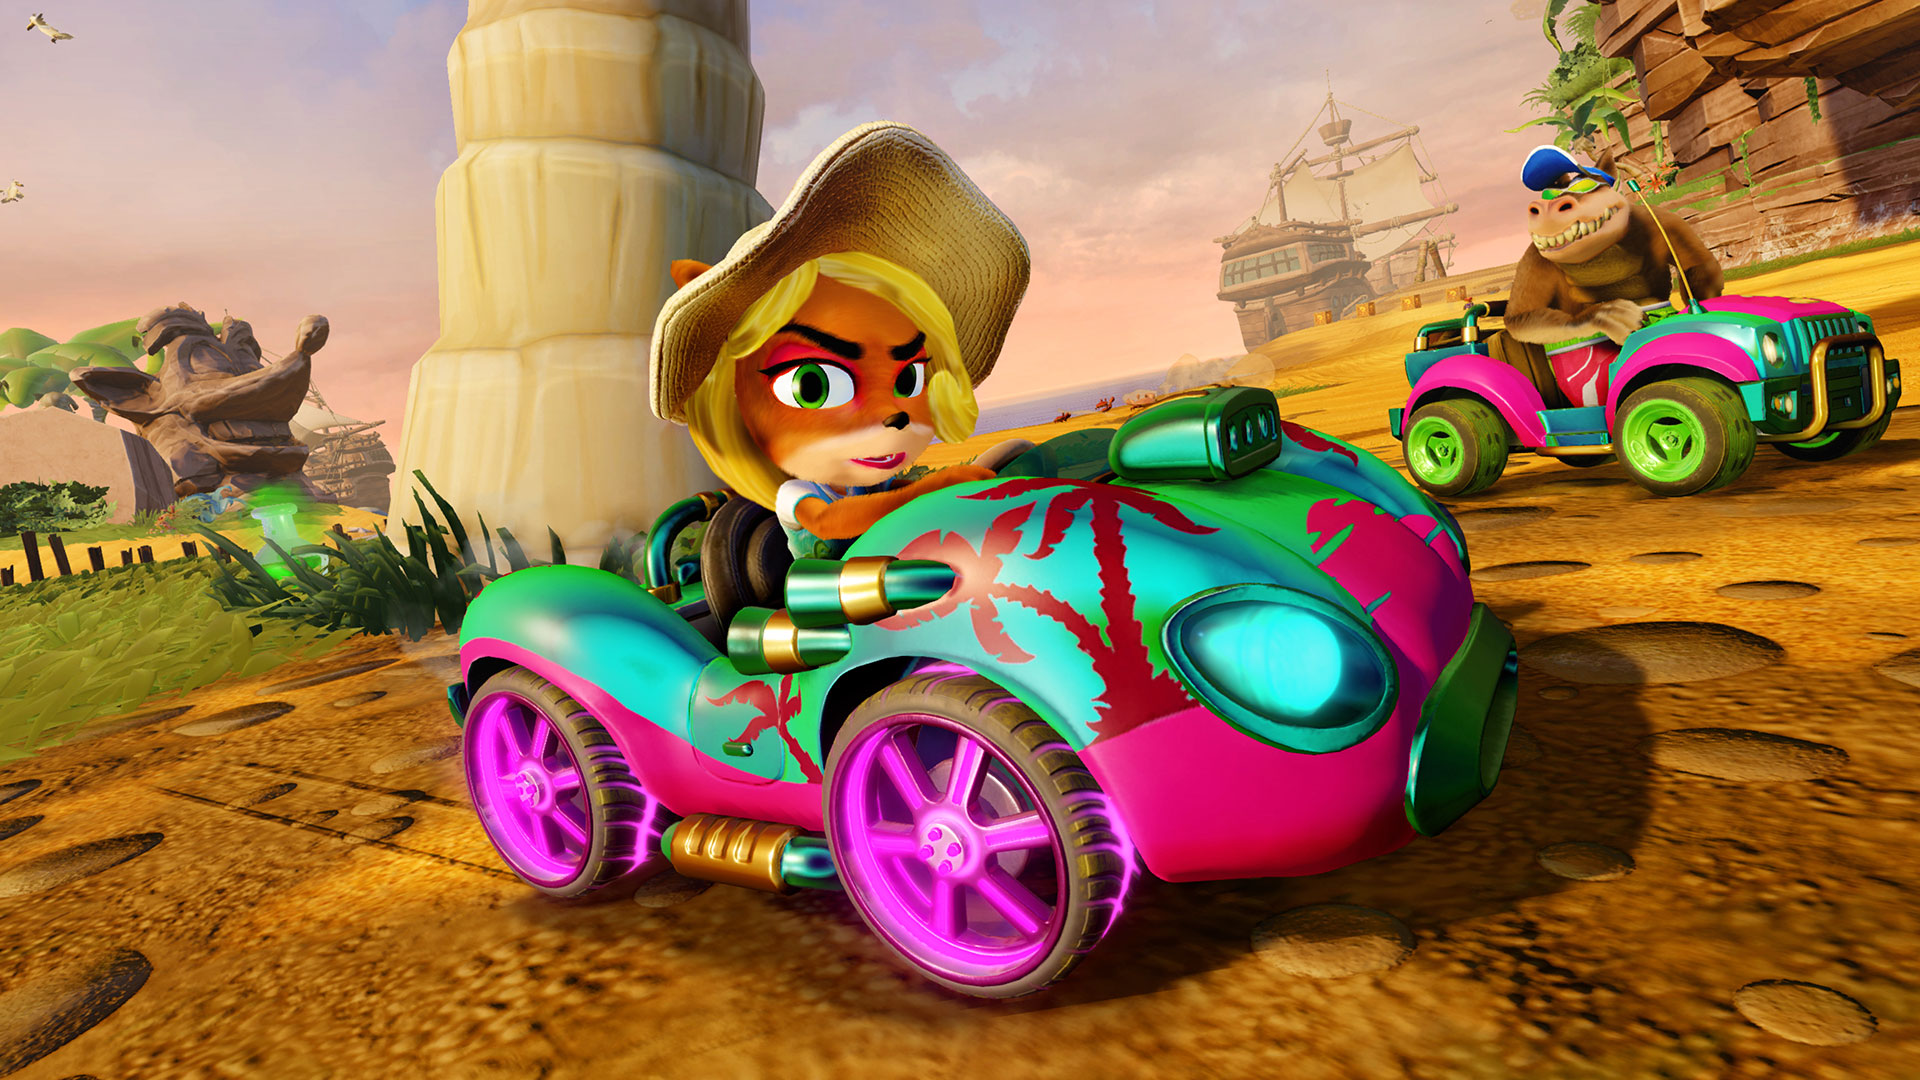 Goggles Girl Wallpaper Crash Team Racing Nitro Fueled Details Character Types